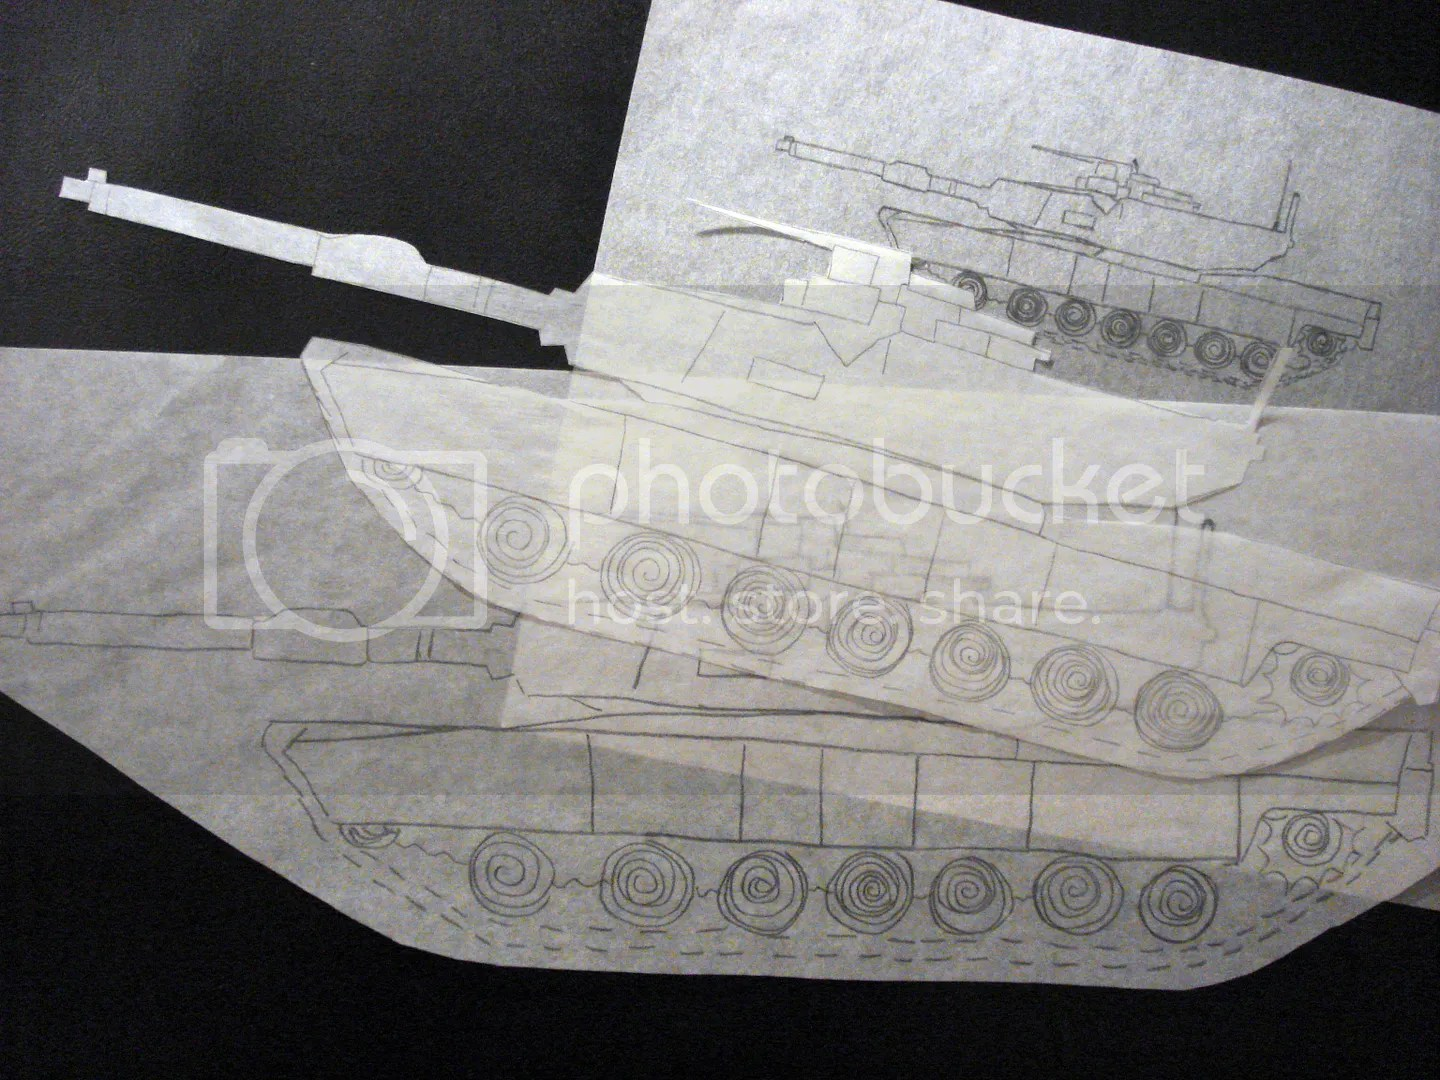 U.S. Military M1 Abrams main battle tank sketch drawing bead embroidery felt project